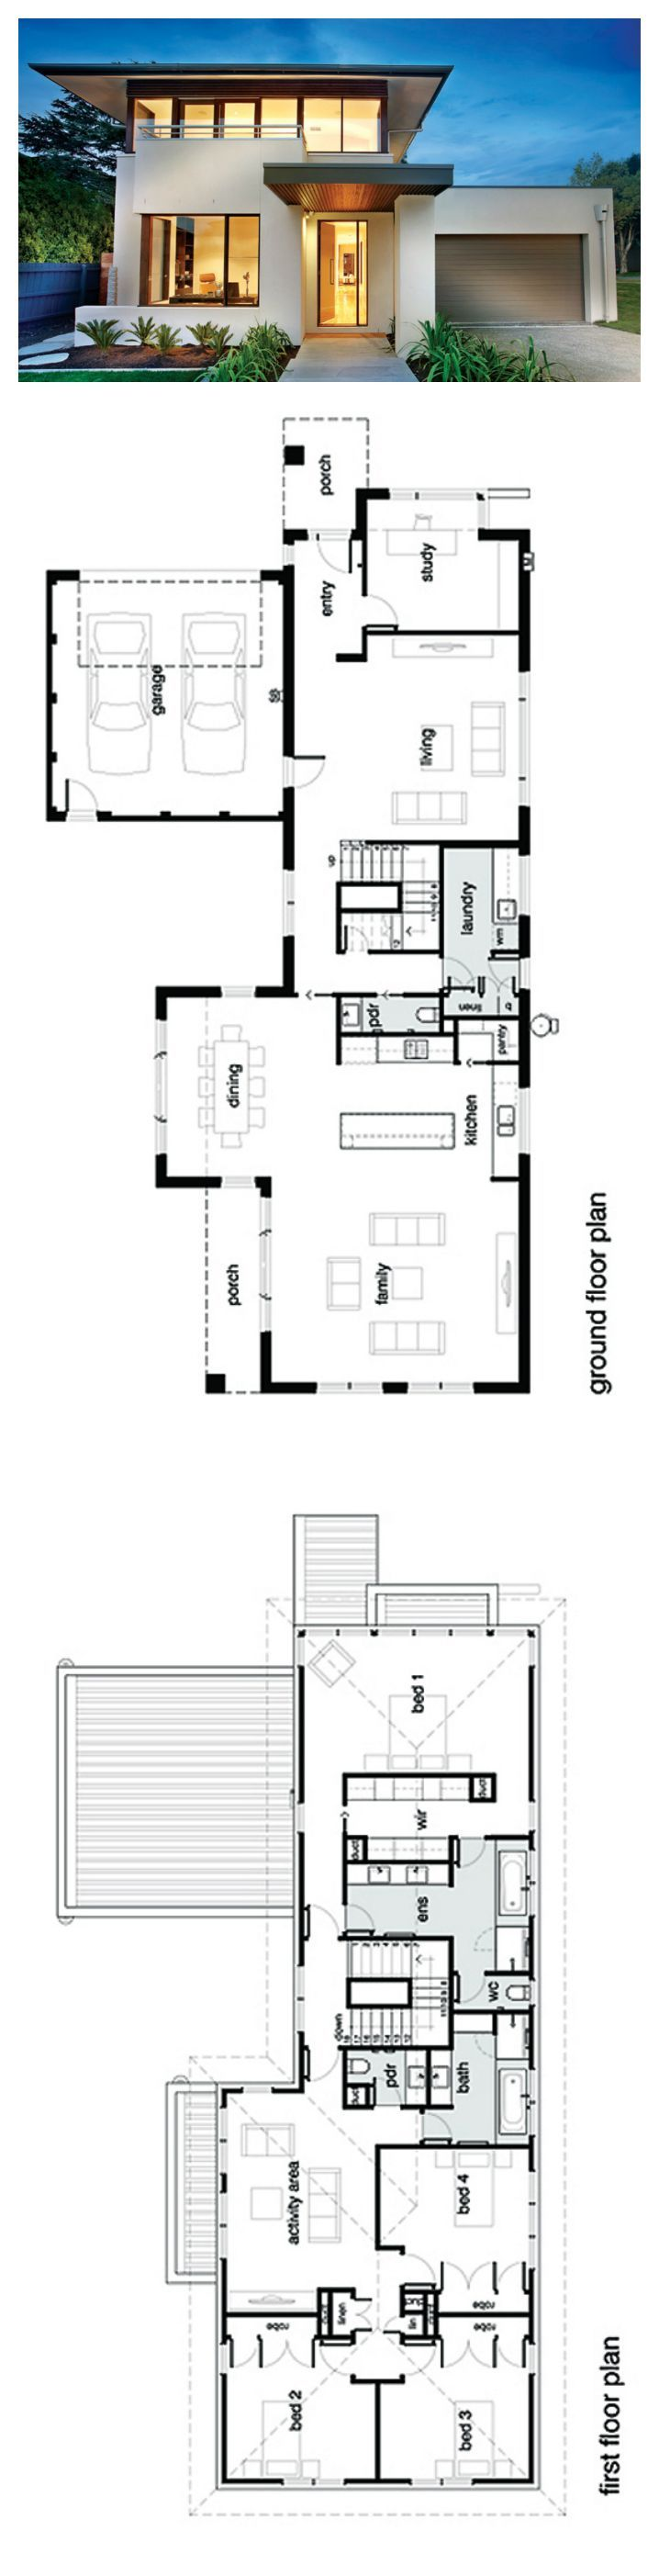 Best 25 modern house plans ideas on pinterest modern for Contemporary mansion floor plans